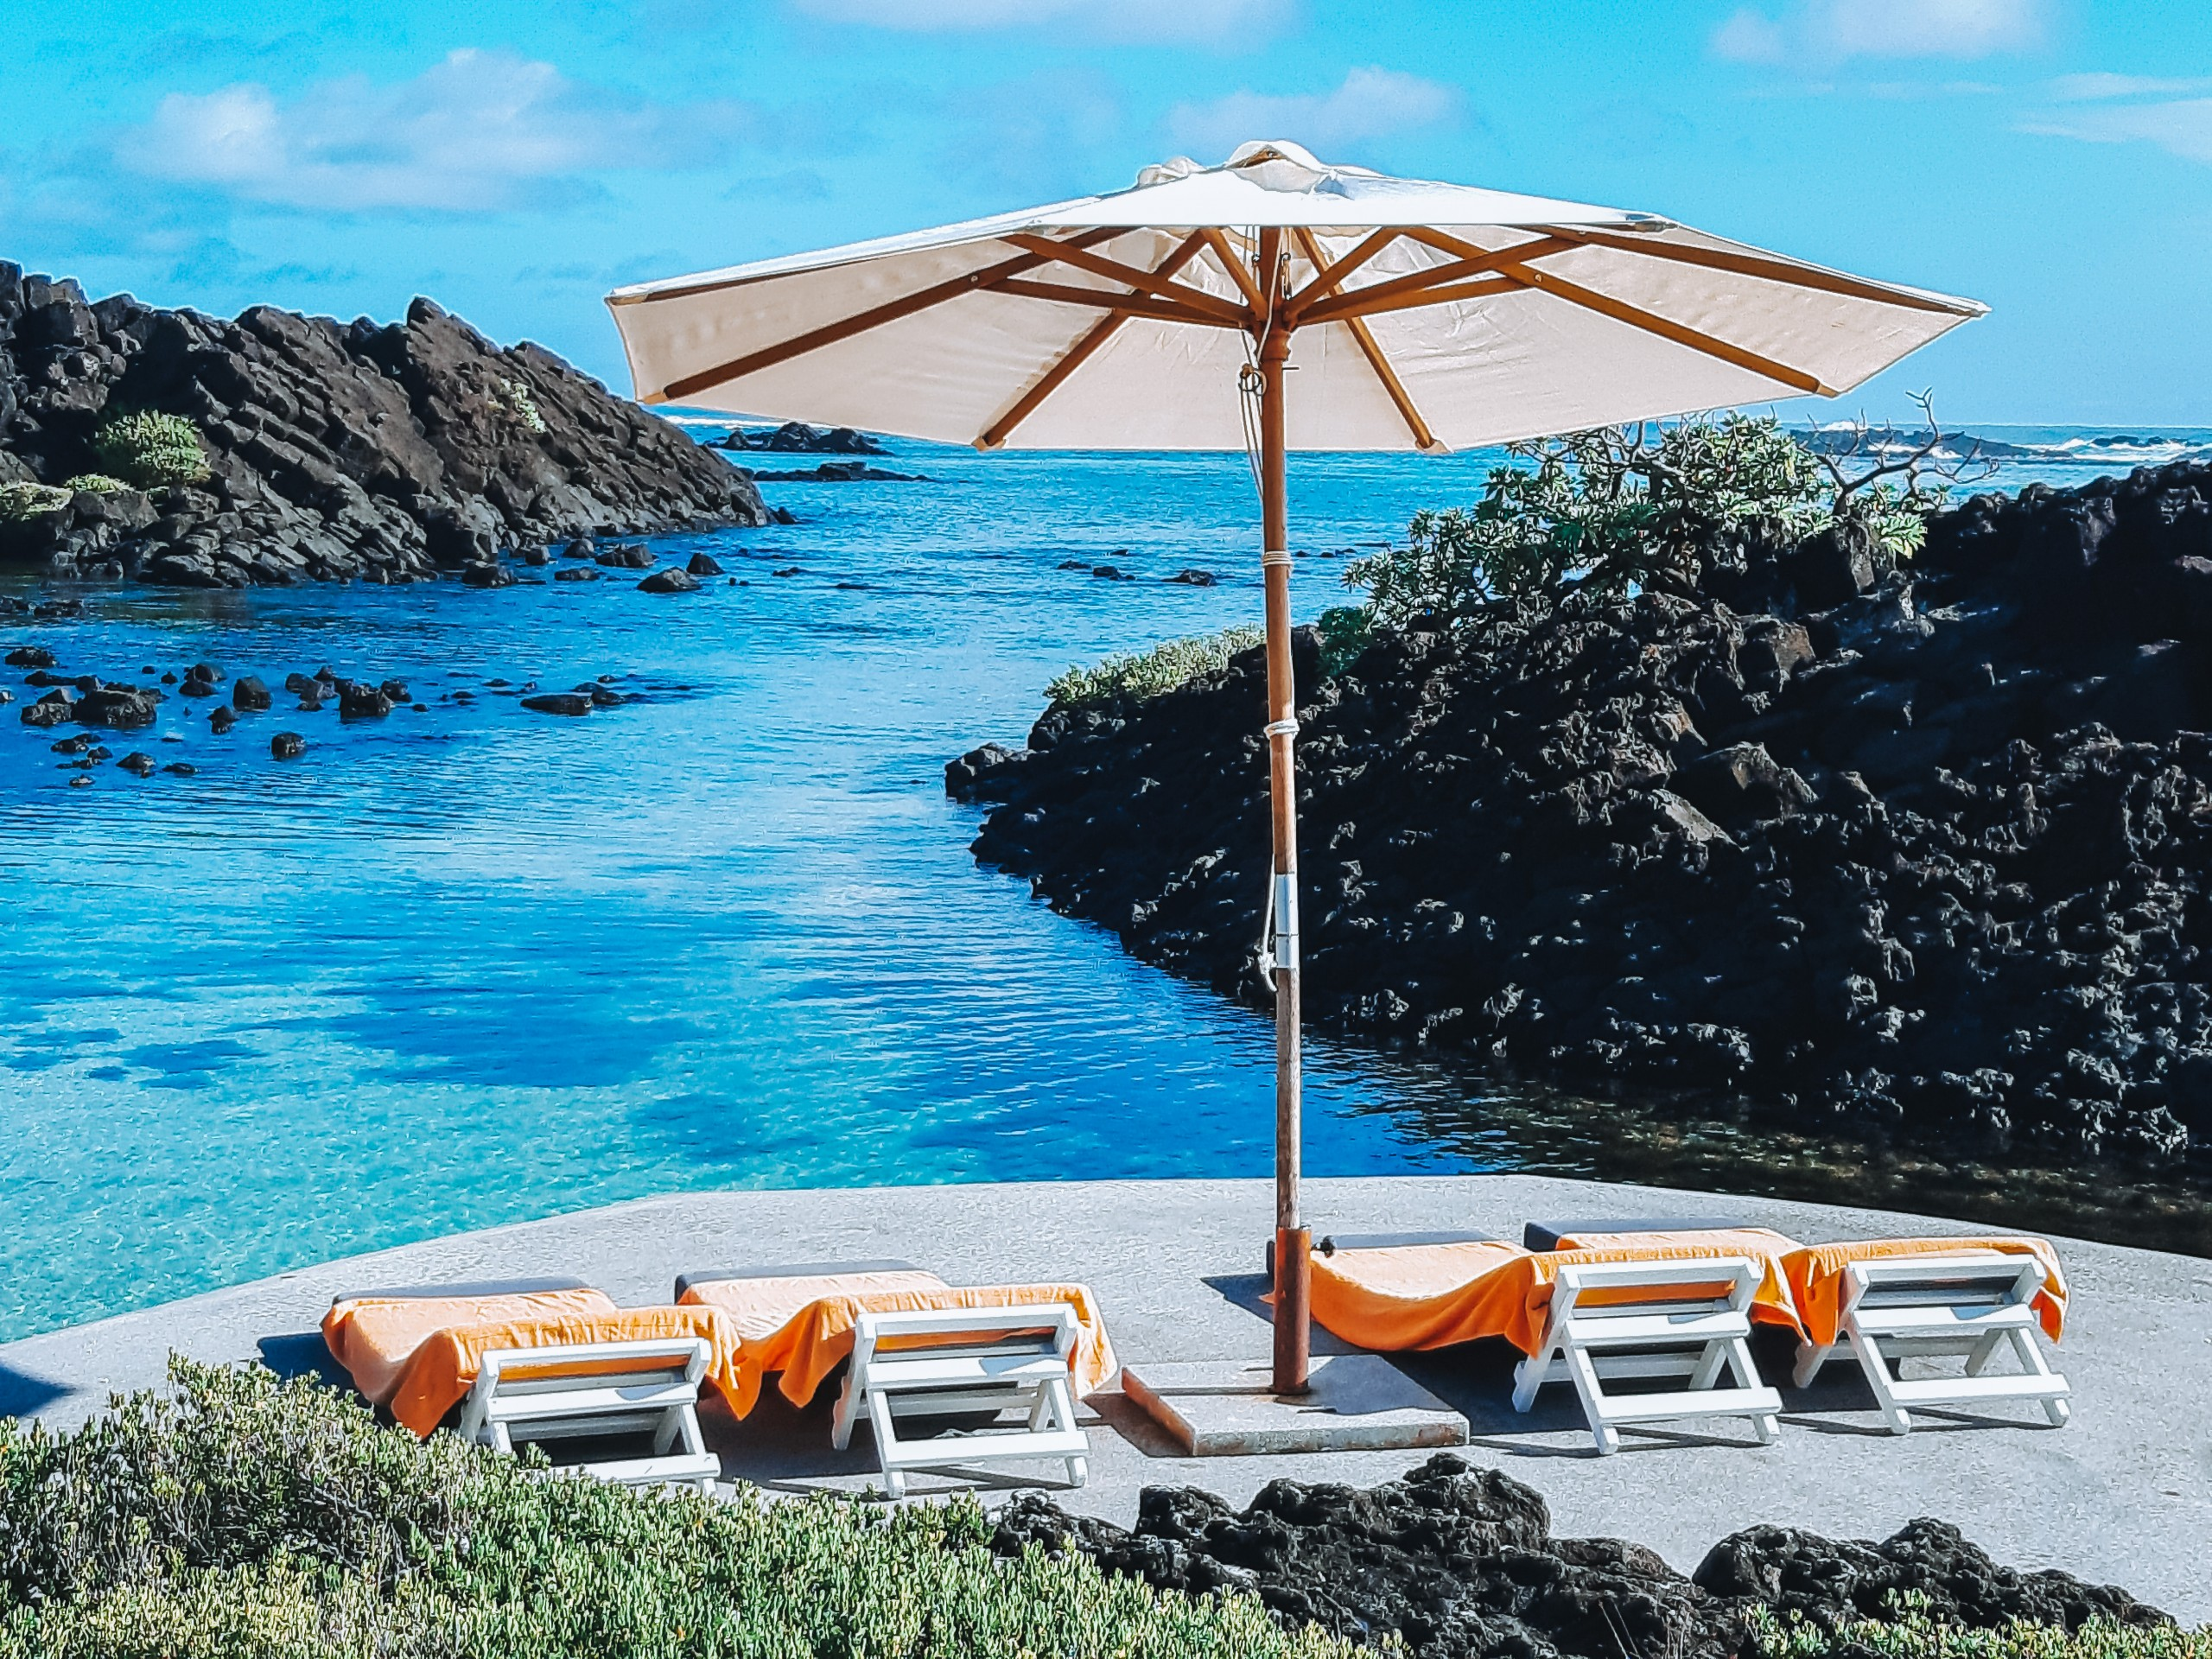 Villa Brisas beachfront sun bathing platform